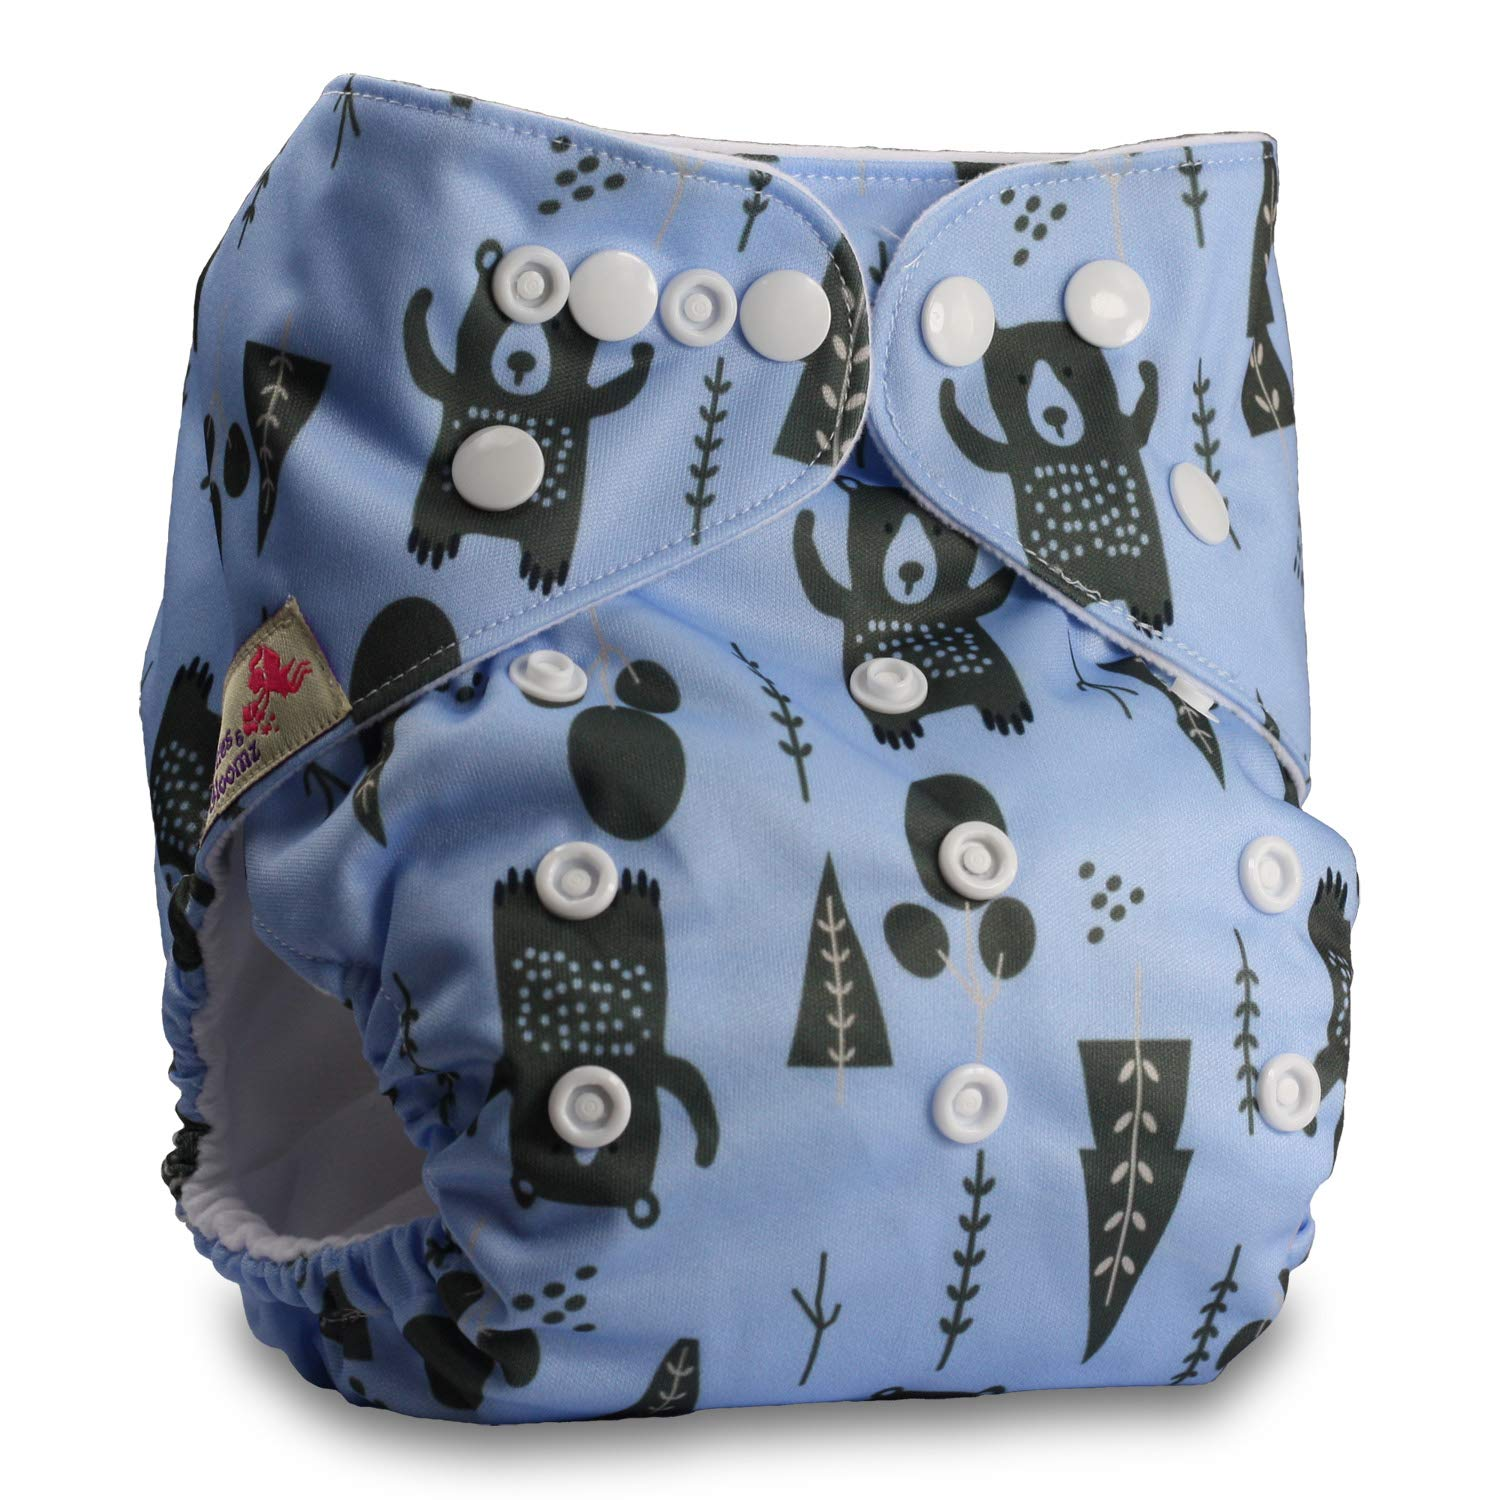 Pattern 97 Fastener: Popper Reusable Pocket Cloth Nappy Without Insert Set of 1 Littles /& Bloomz